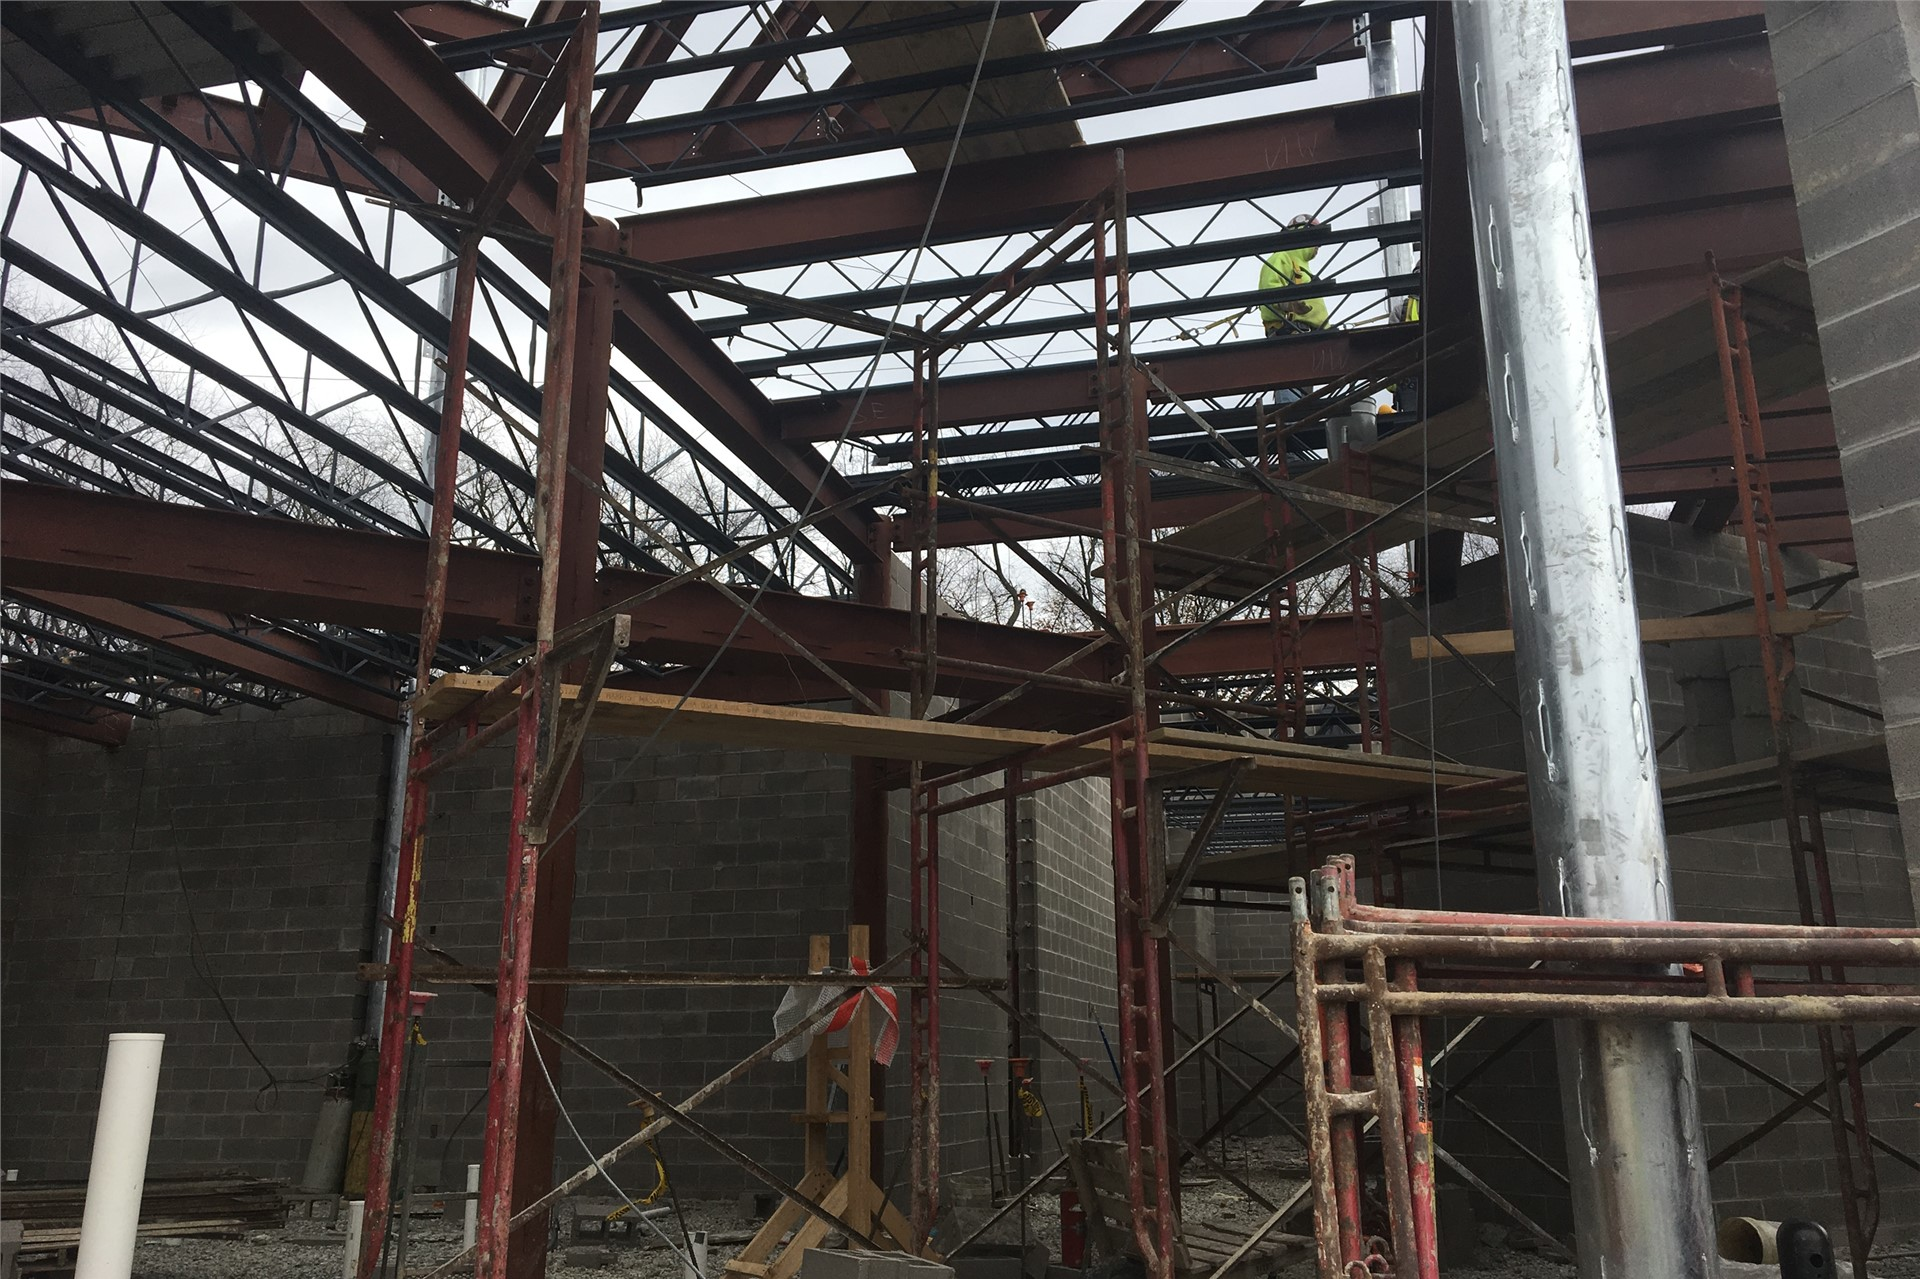 New school construction site: steel beams in place